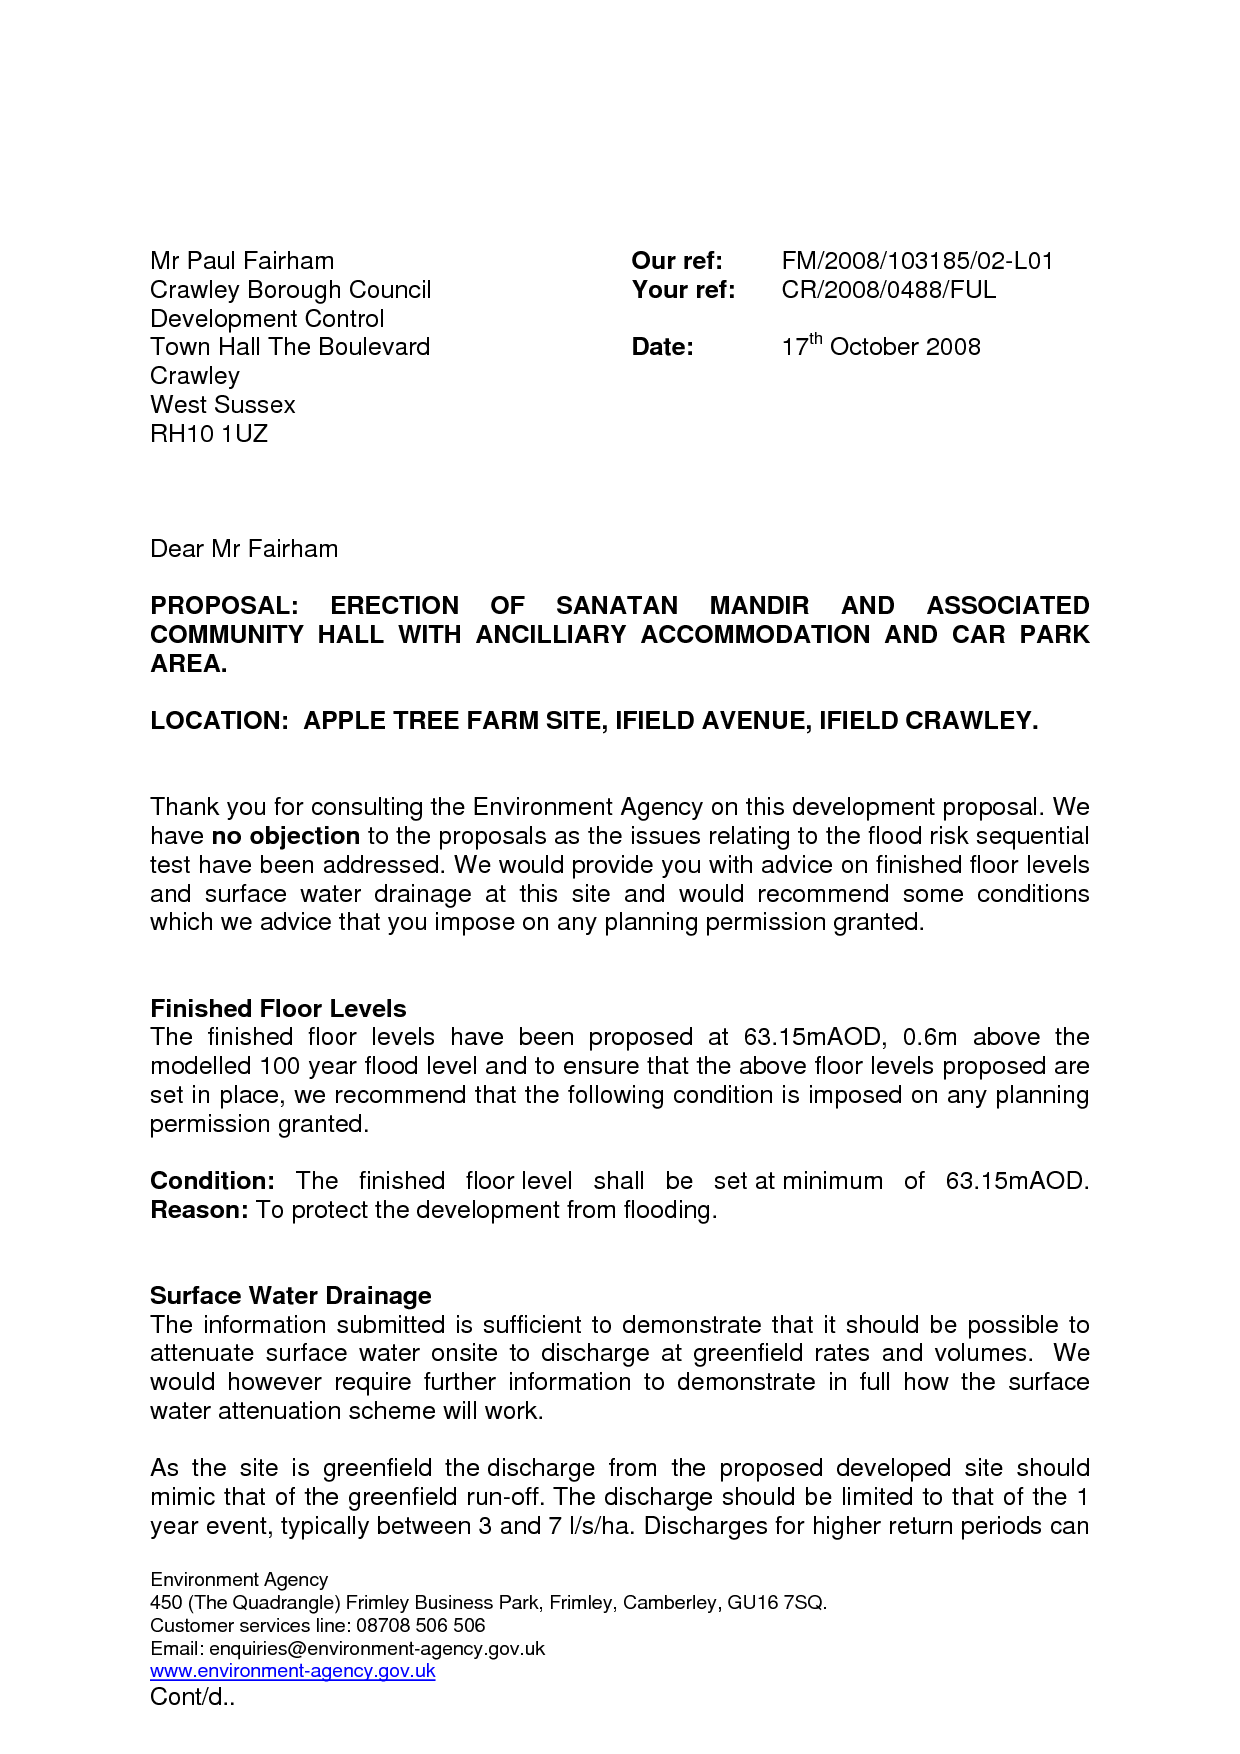 Fax Letter A Big Collection Of Free Fax Letter Templates And